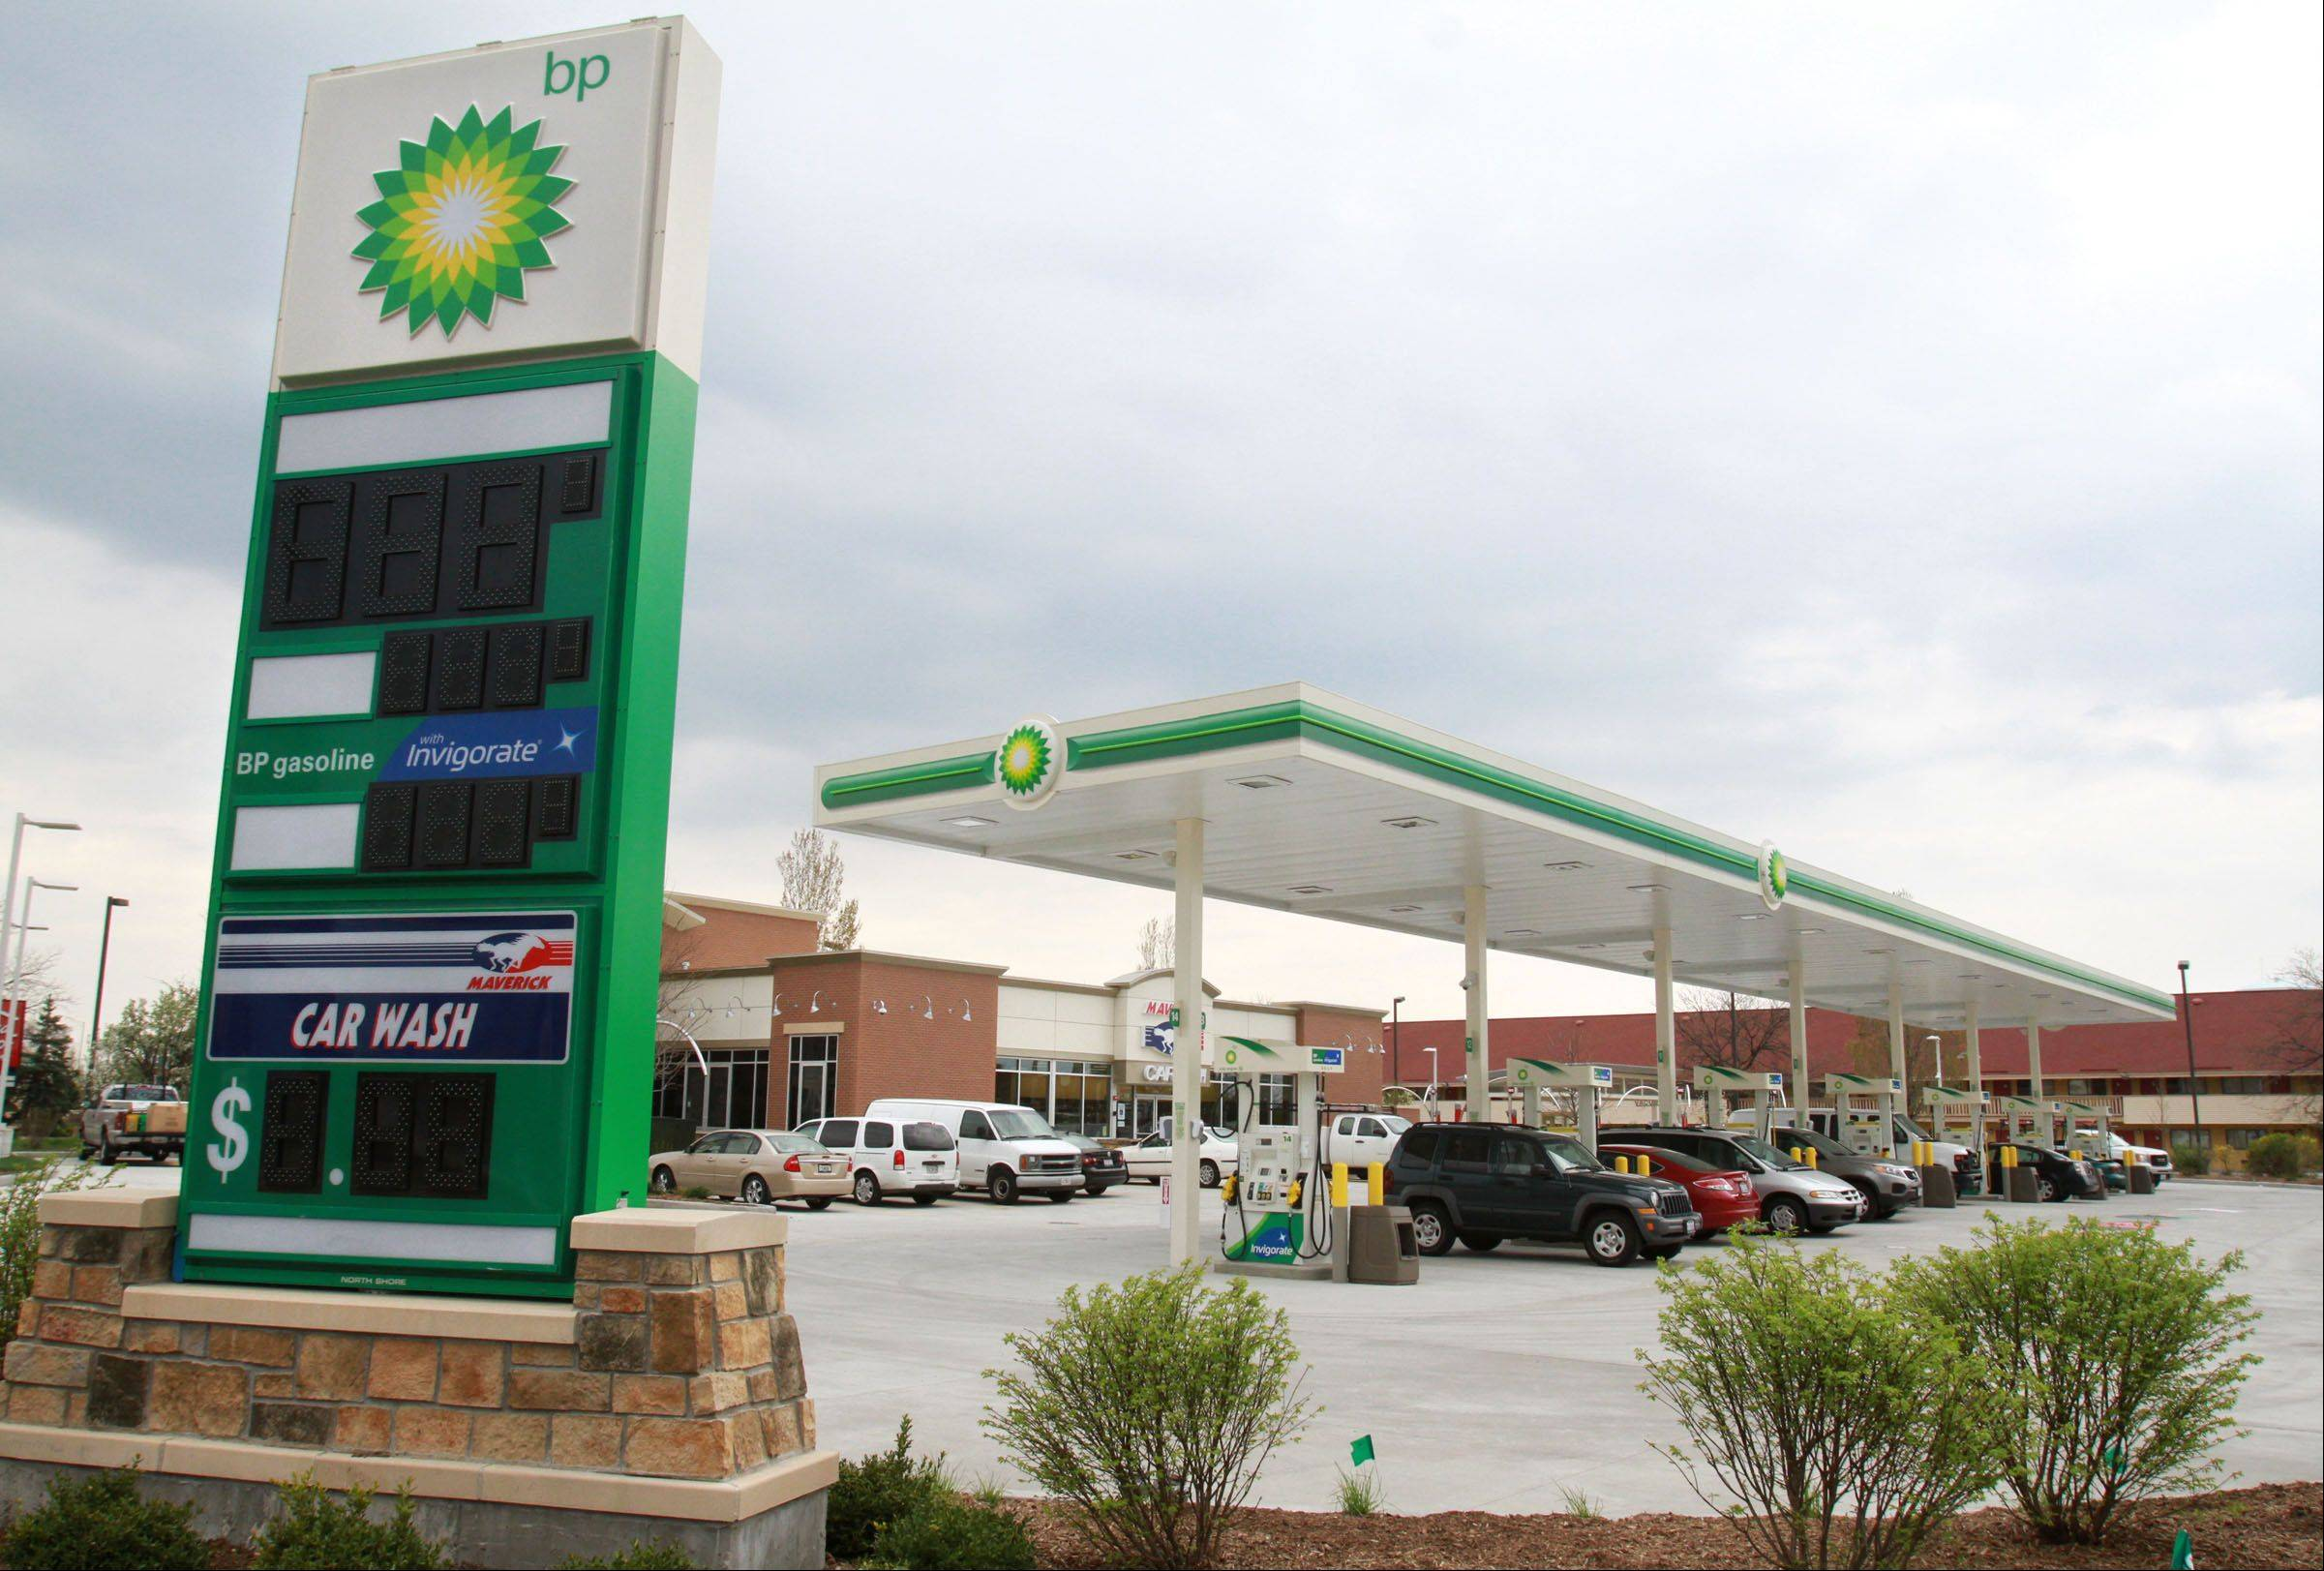 The new BP gas station and car wash at Arlington Heights and Algonquin roads in Arlington Heights look just about ready to open.